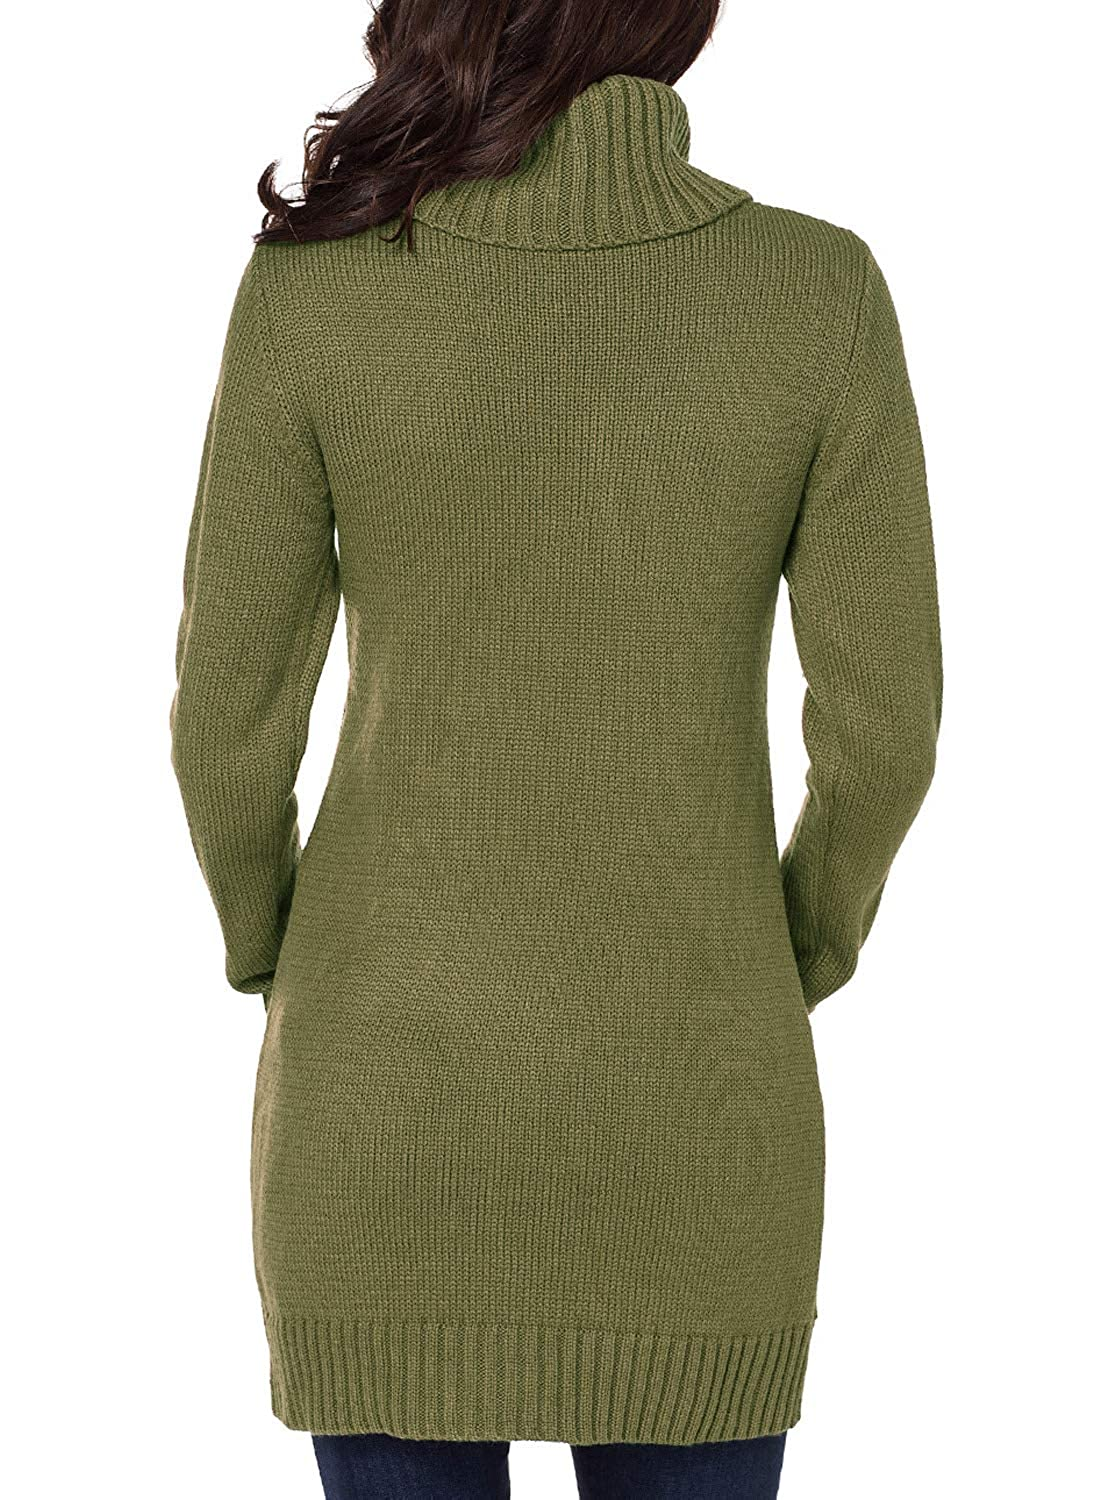 9d5a7277ec Dokotoo Womens Winter Cozy Casual Cable Knit Slim Sweater Jumper Dress at  Amazon Women s Clothing store